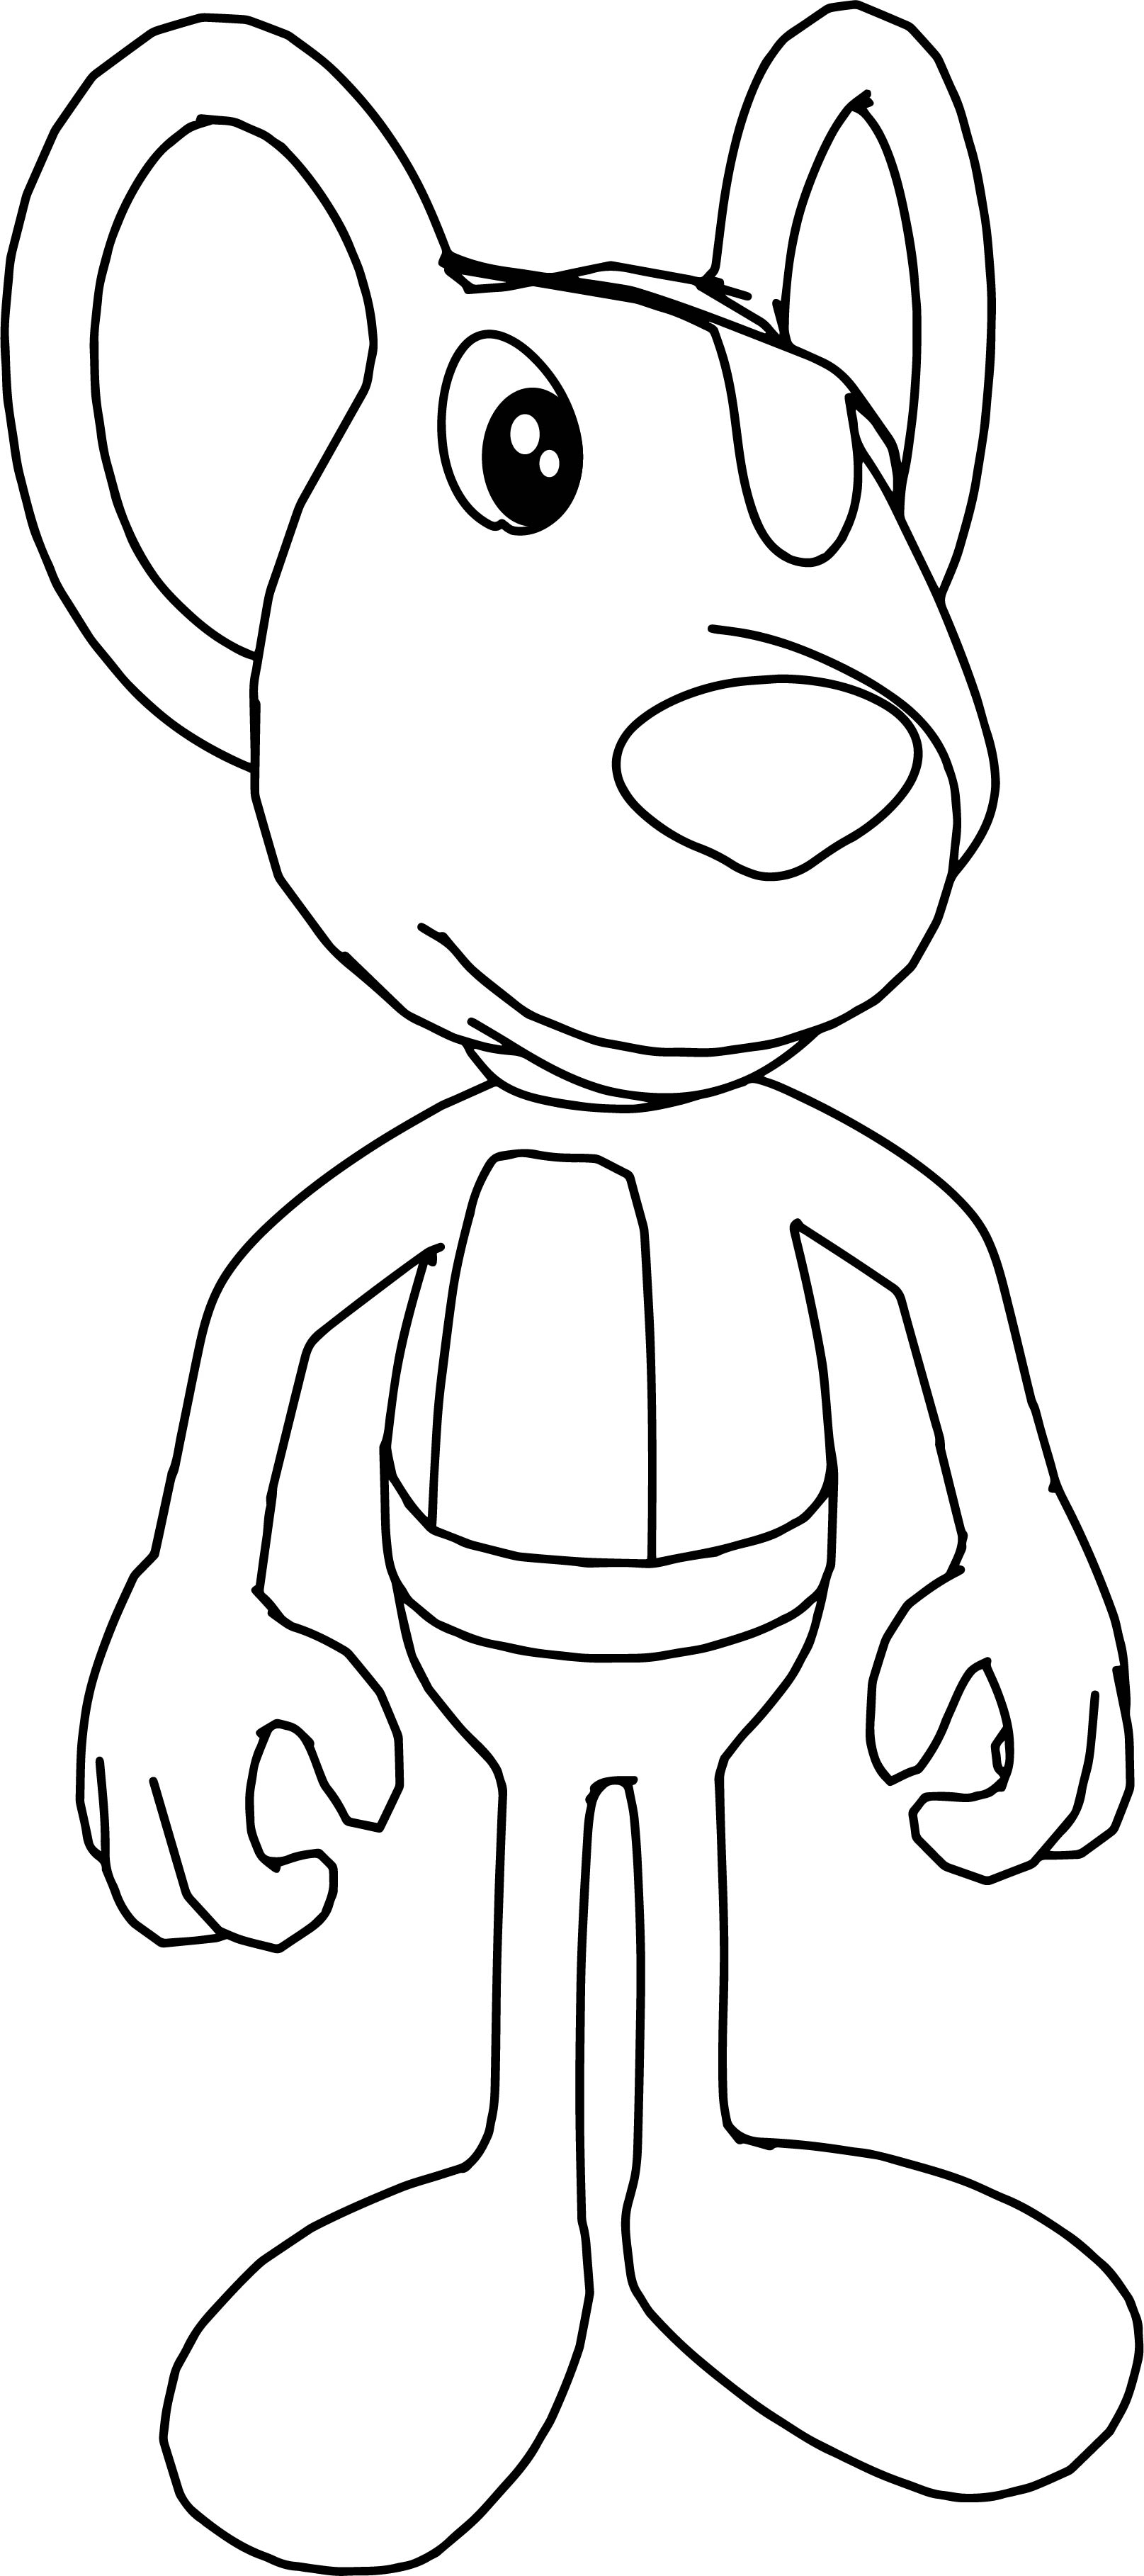 danger mouse coloring pages - photo#11